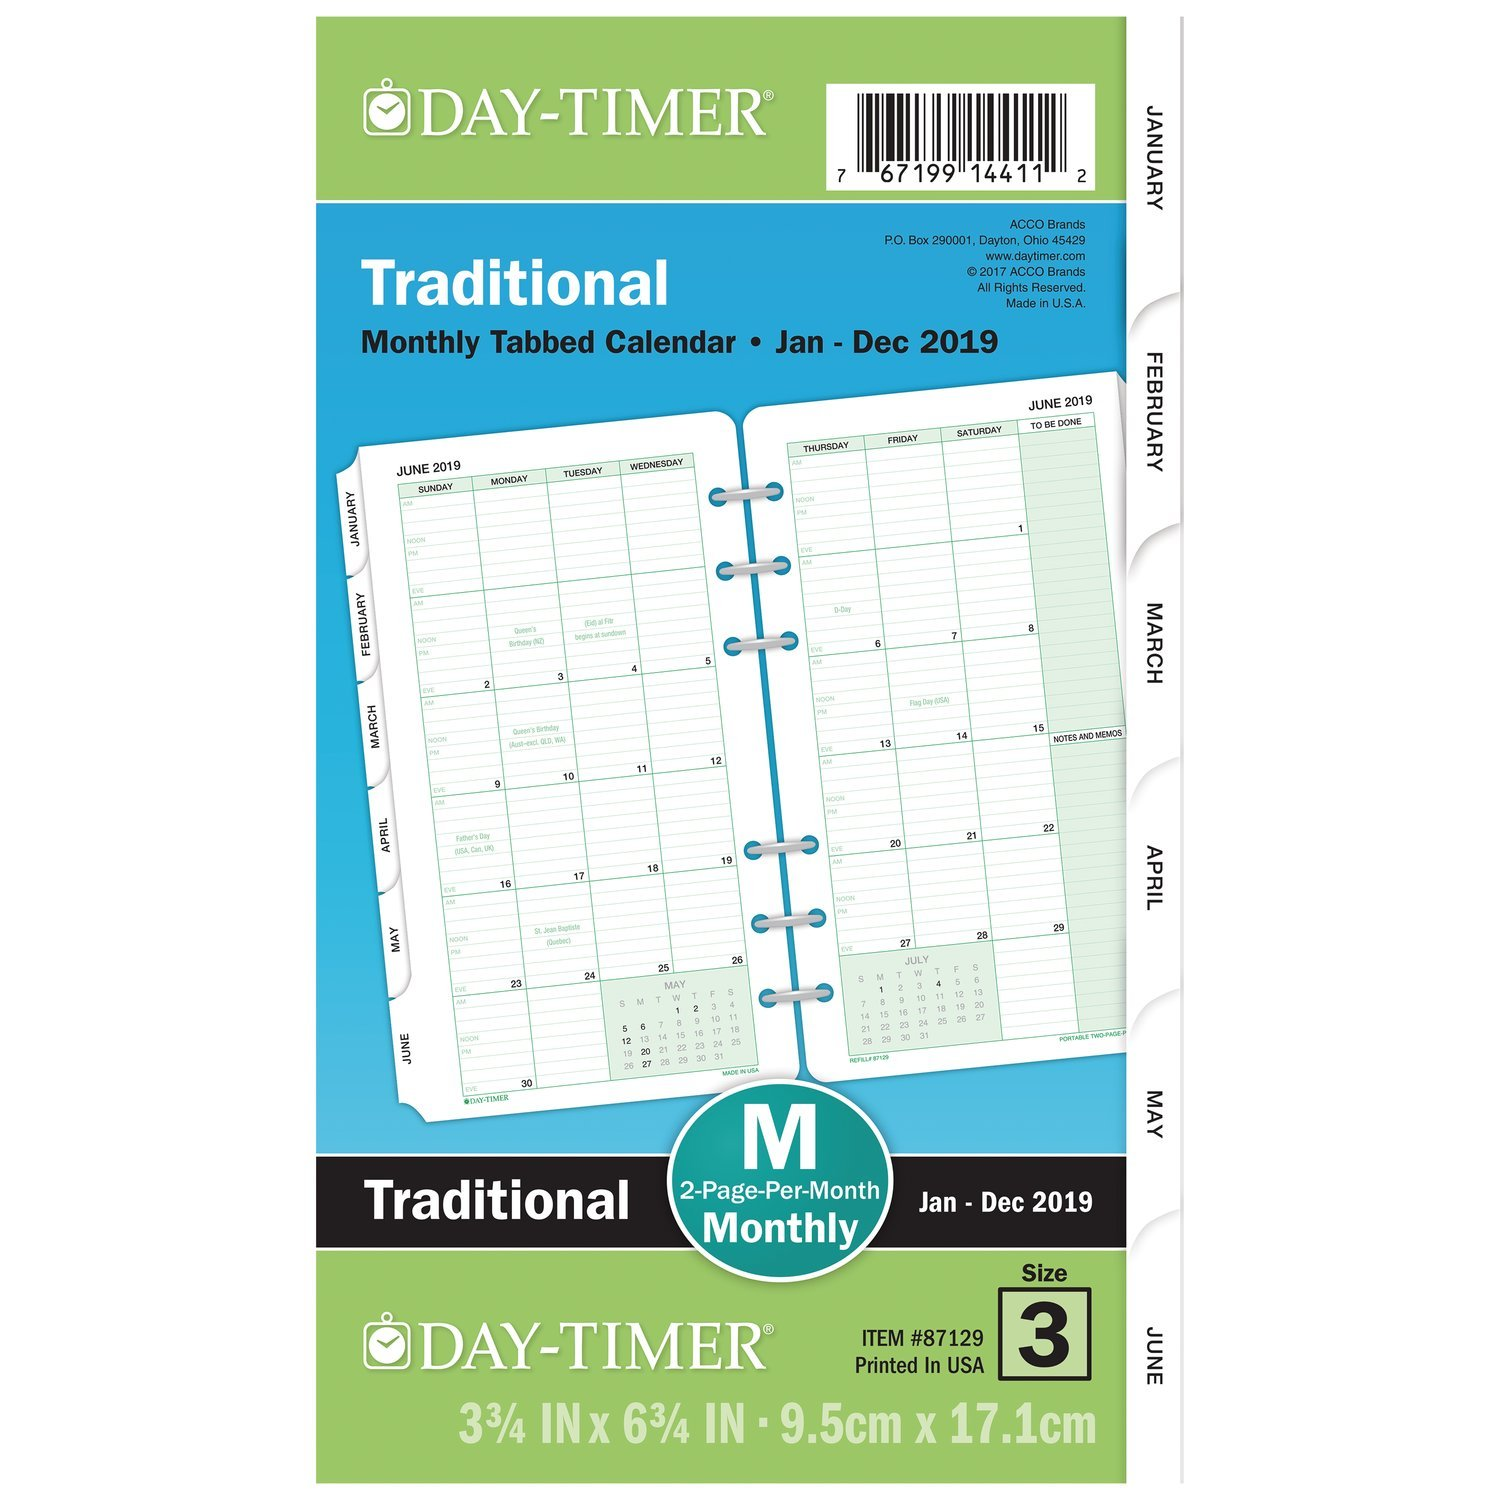 Day-Timer 2019 Planner Refill, 8-1/2 x 11, Folio Size 5, Two Pages Per Month, Loose Leaf, Classic (87329) 8-1/2 x 11 ACCO Brands 873291901